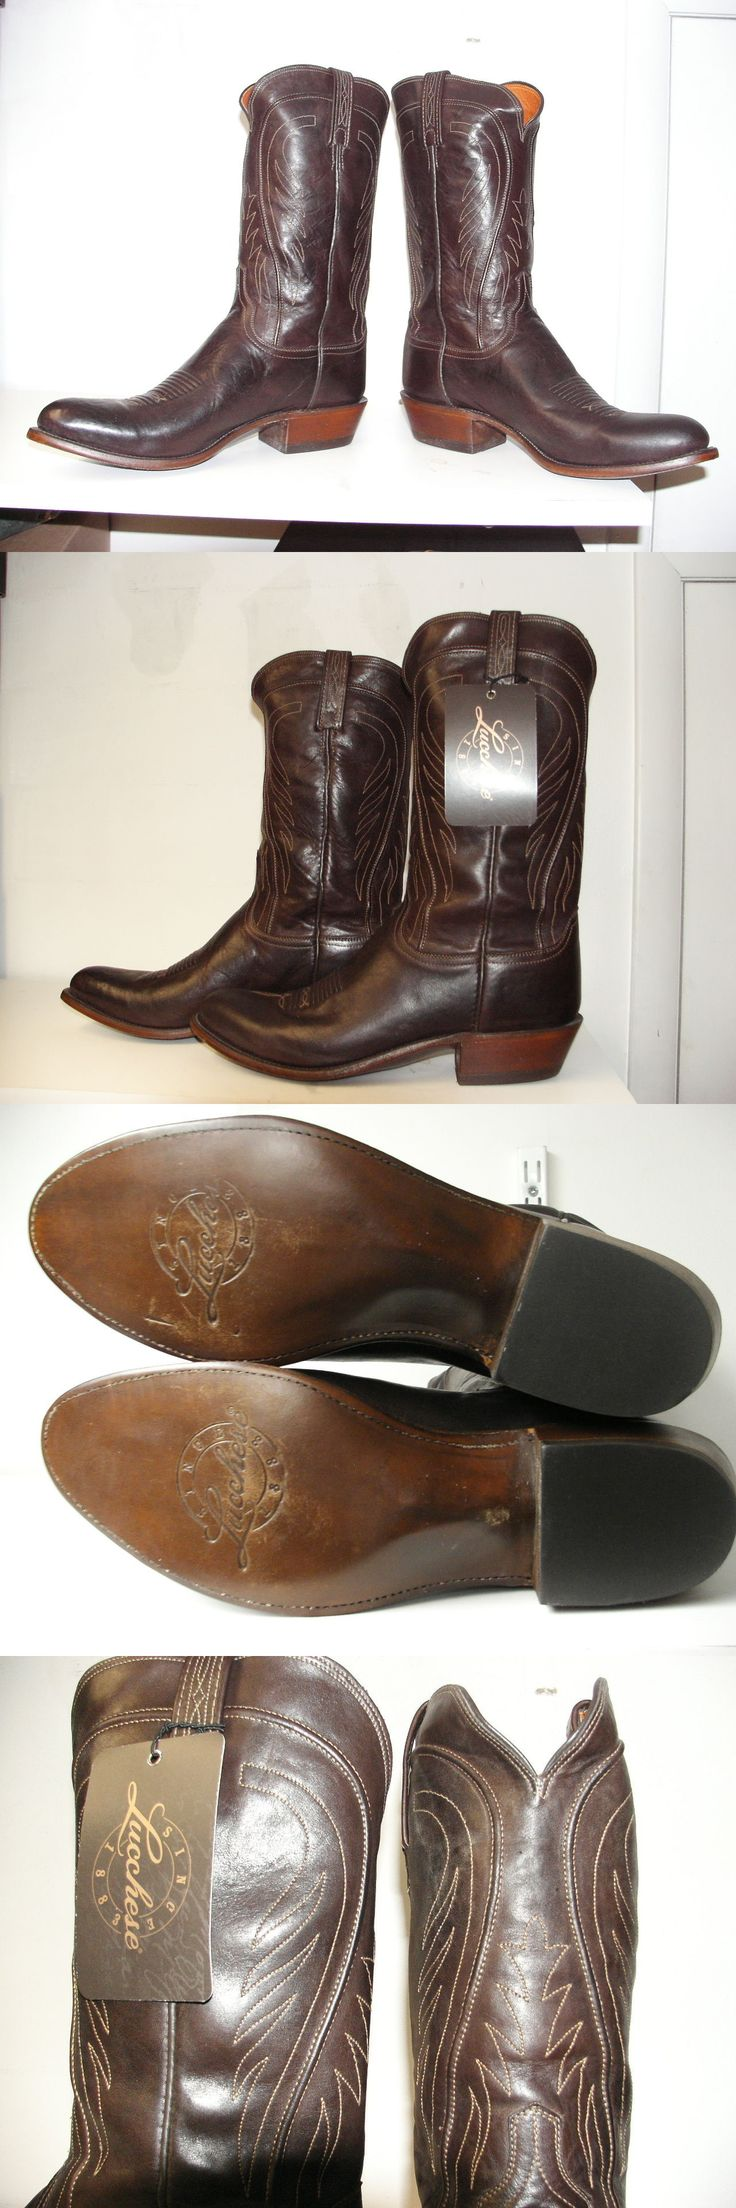 Western Boots 159002: New Lucchese Usa Men S Brown Leather Boot N8468.R4 Reg $570. Size 12 D -> BUY IT NOW ONLY: $199.95 on eBay!